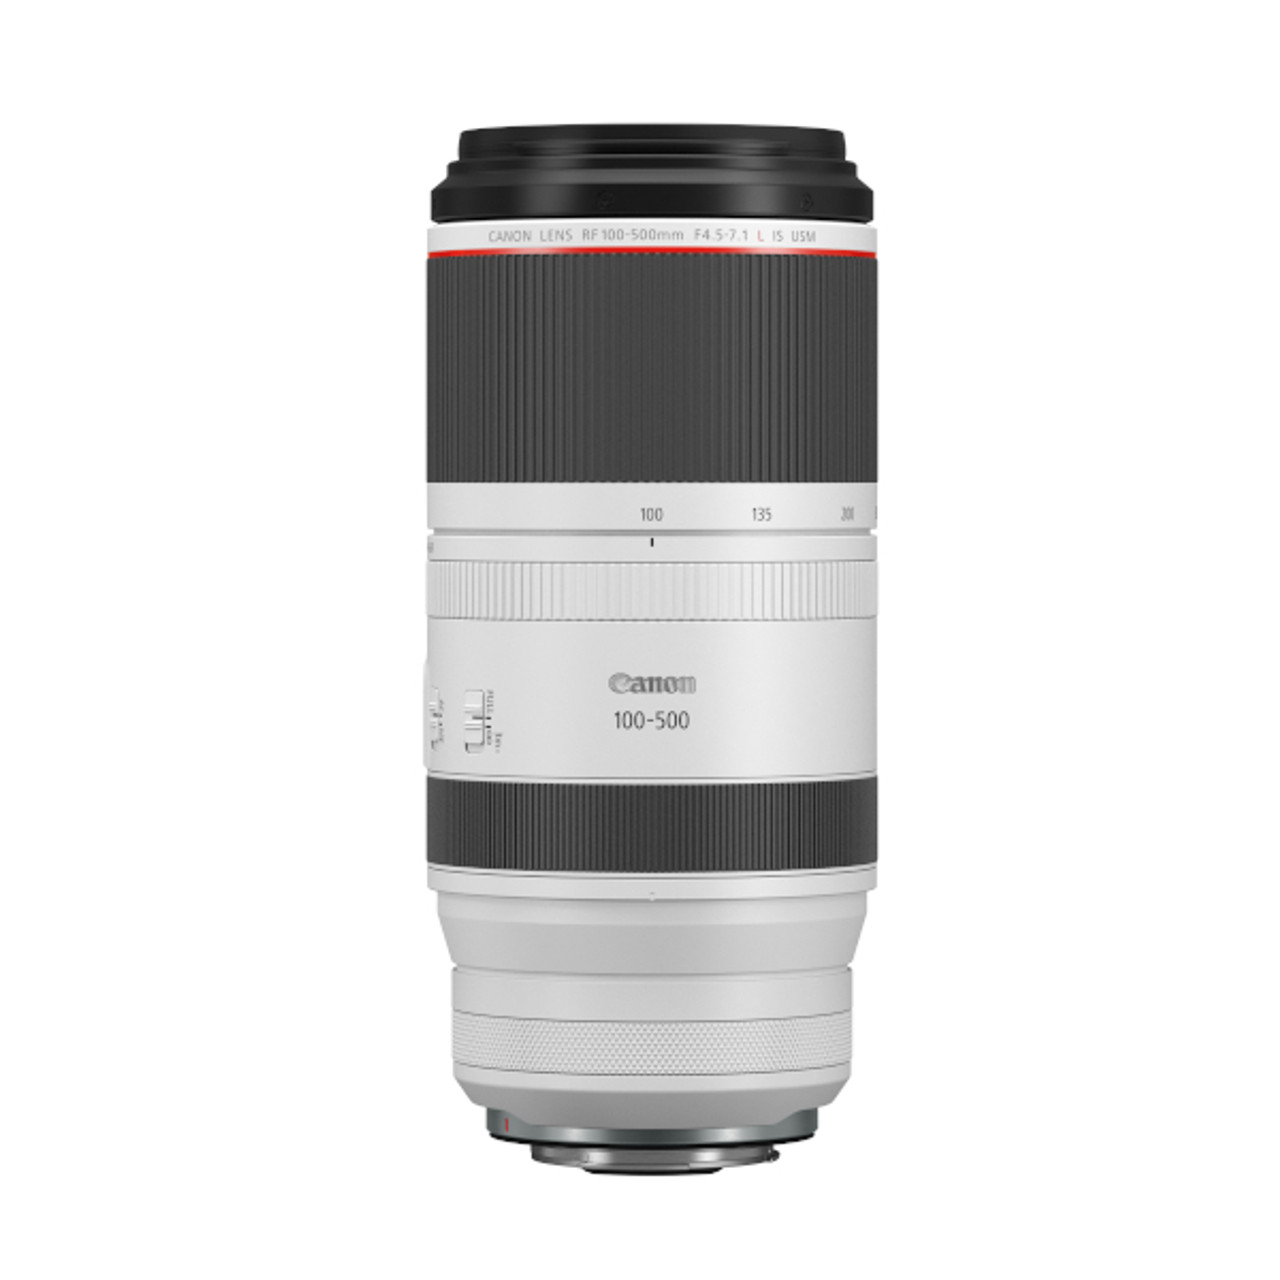 Canon RF 100-500mm F4.5-7.1 L IS